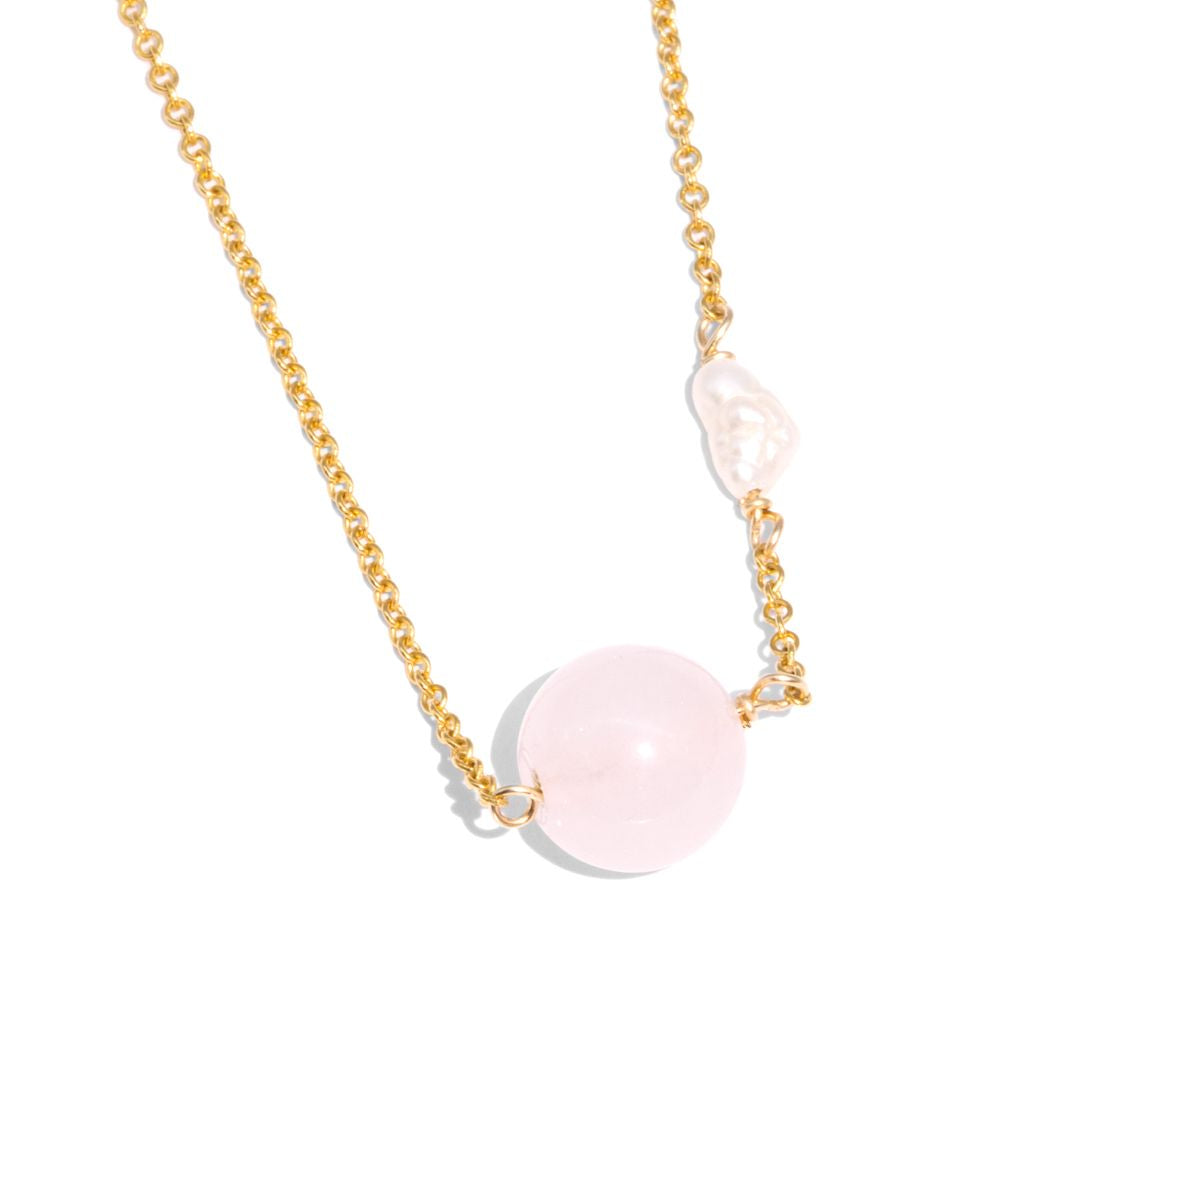 The Gold Pink Jelly Necklace